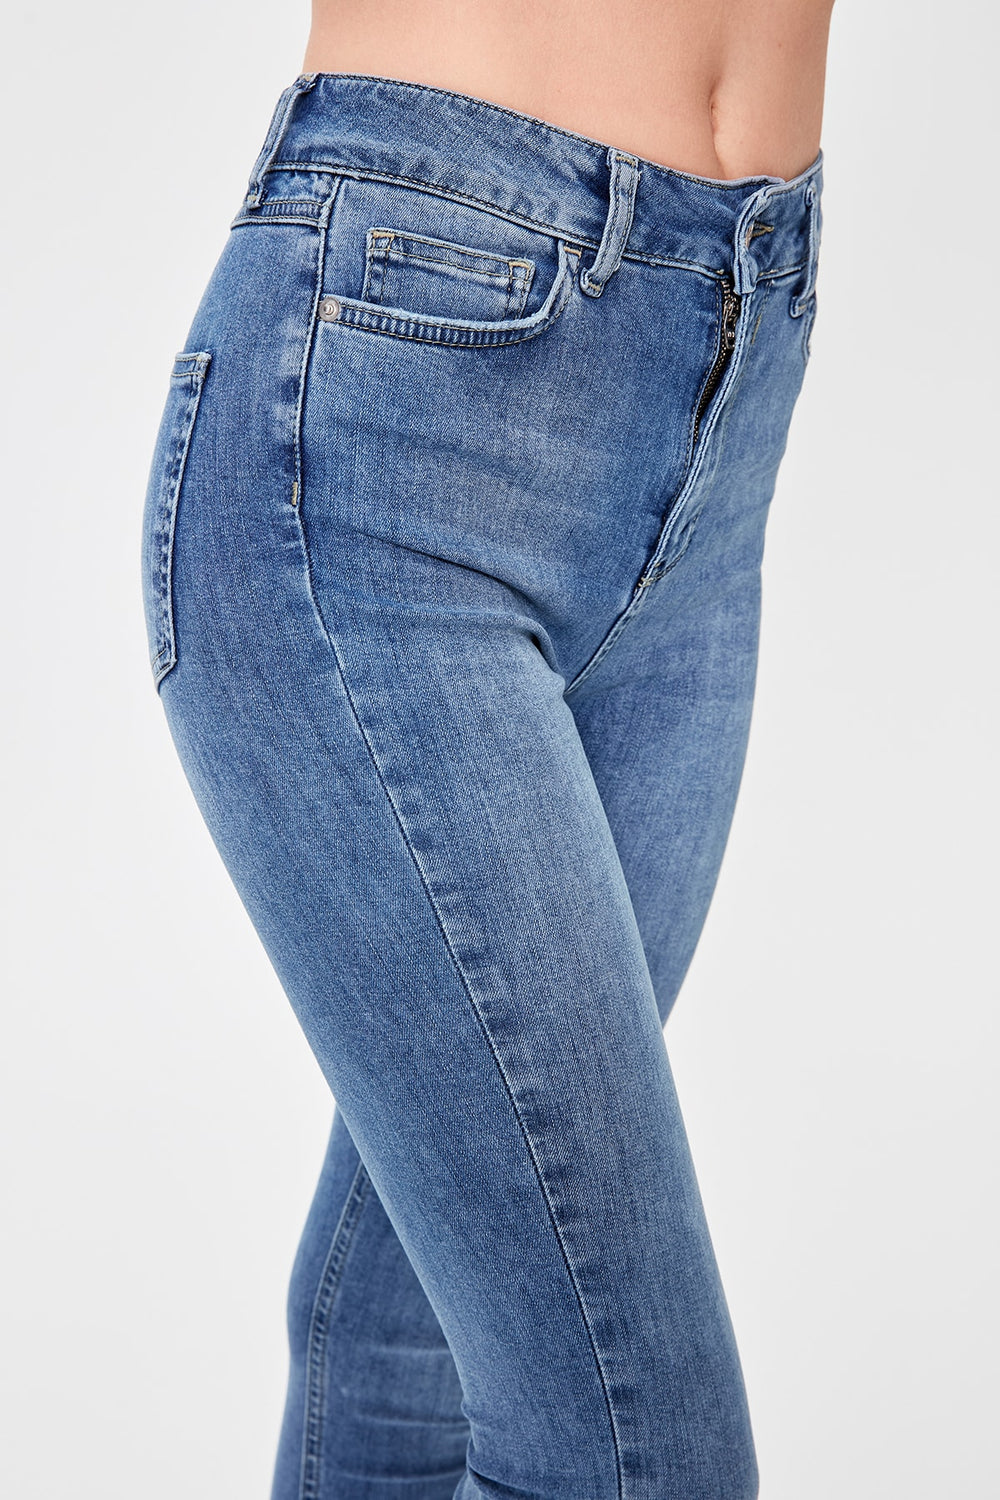 Miss Zut Miss Zut Blue Normal Waist Skinny Jeans Miss Zut &CO